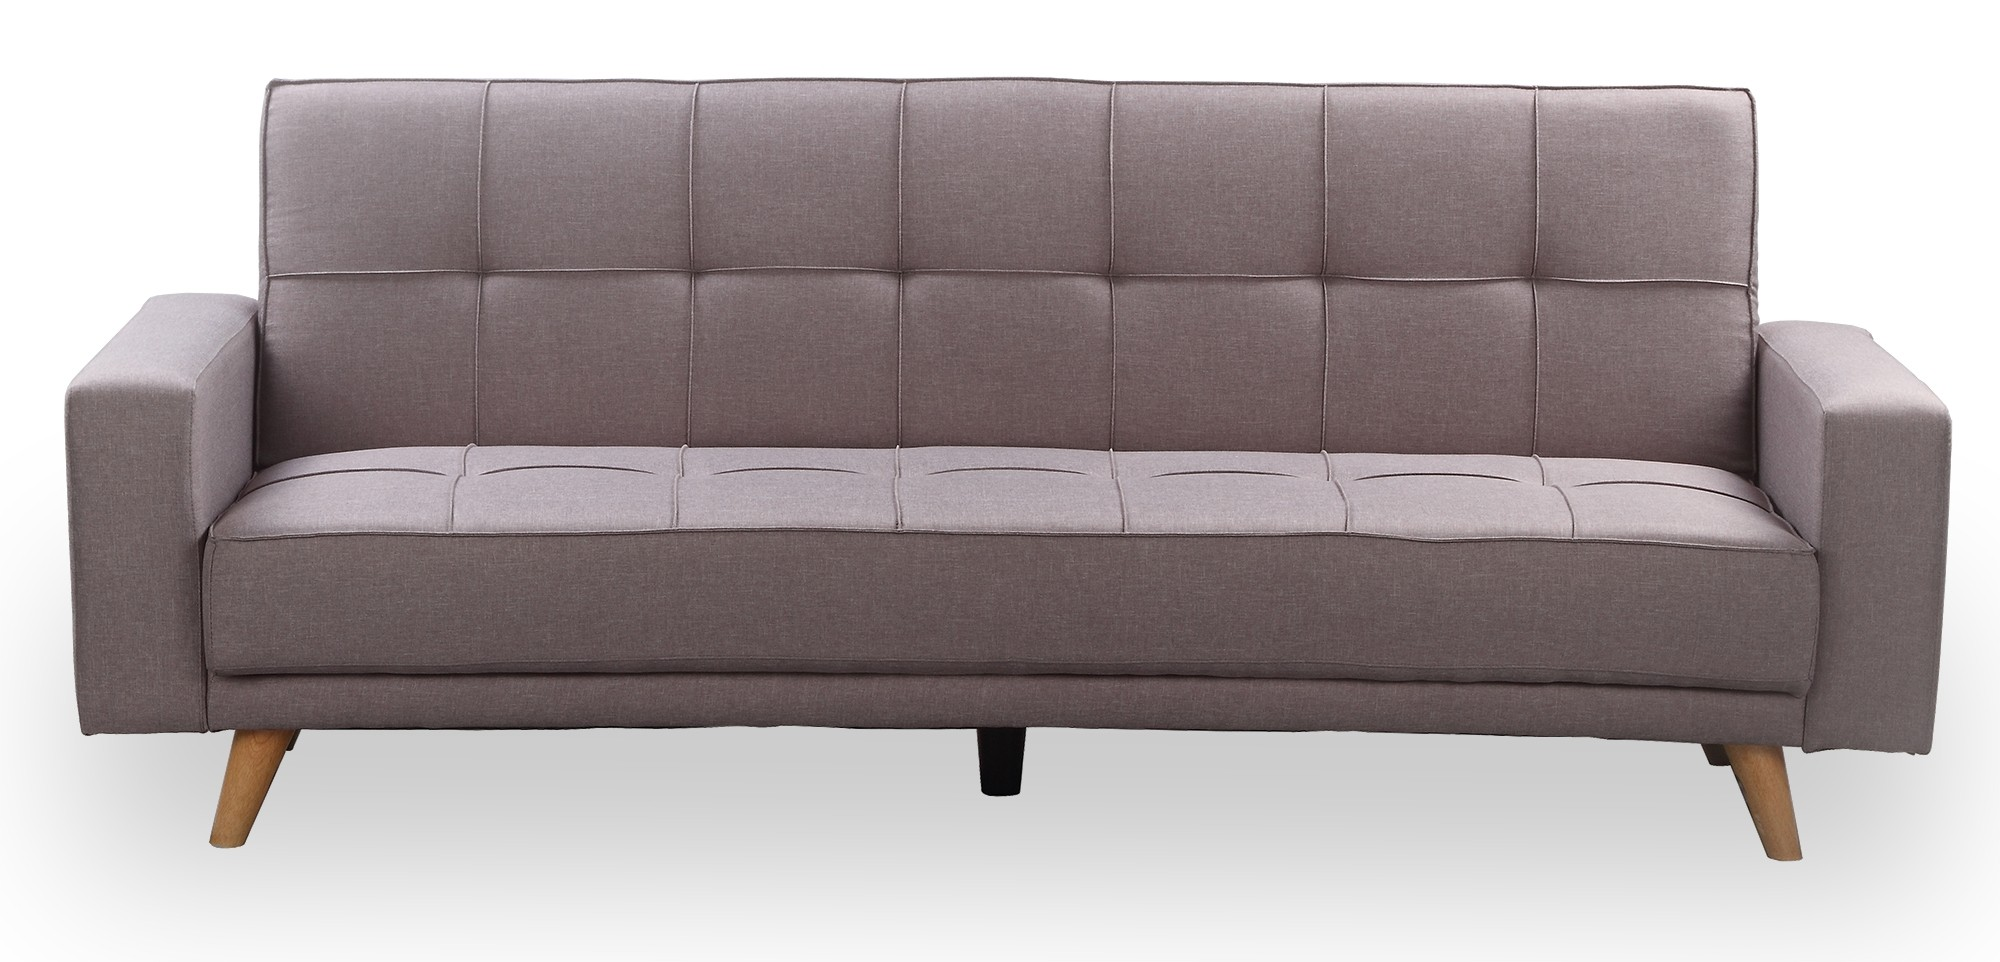 cozy sofa bed 3 seater pu leather with cup holders black grey furniture and home décor